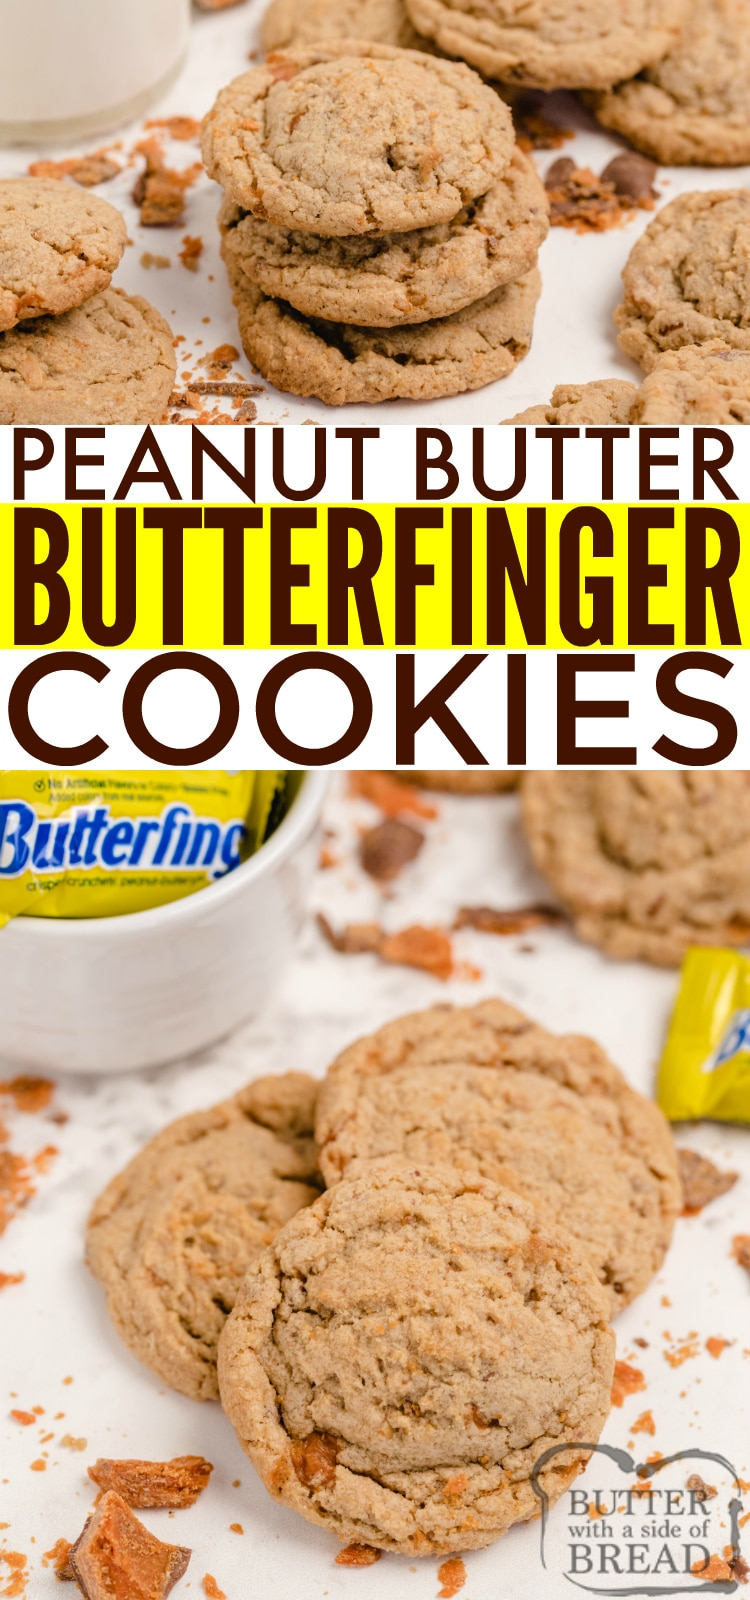 Peanut Butter Butterfinger Cookies are amazingly soft, chewy and full of crunchy peanut butter and chunks of Butterfinger candy bars!